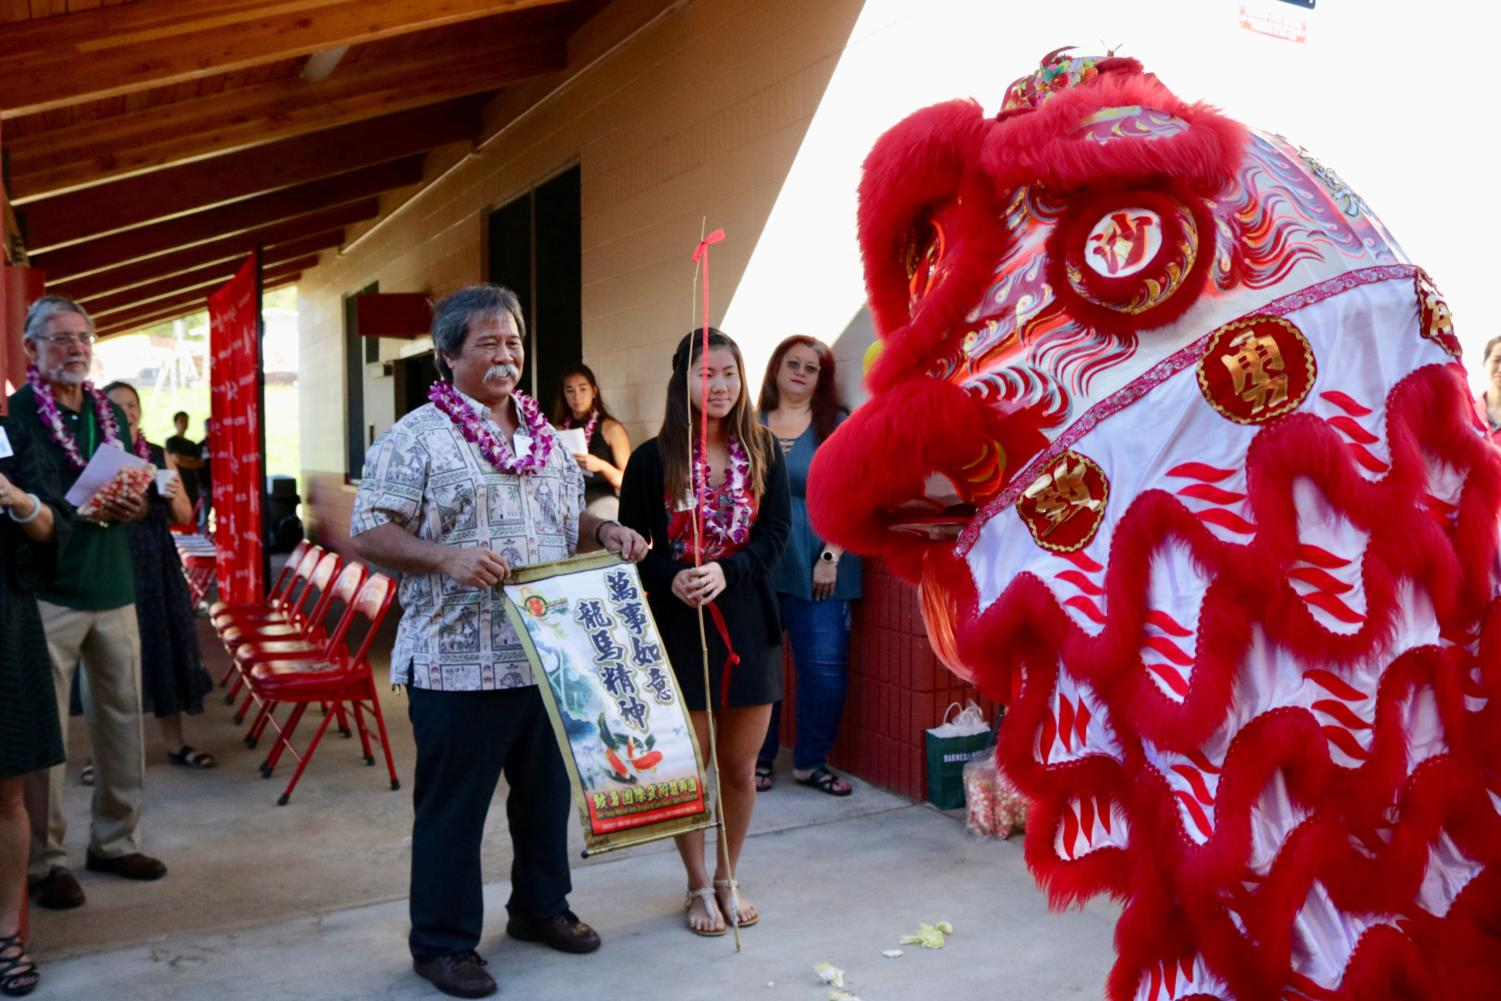 Kalani Principal Mitchell Otani stands beside Lauren Horita (12), student body president, during the lion-dance ceremony to dedicate the new girls' locker room facility on Feb. 20. Photo by S. Wong.